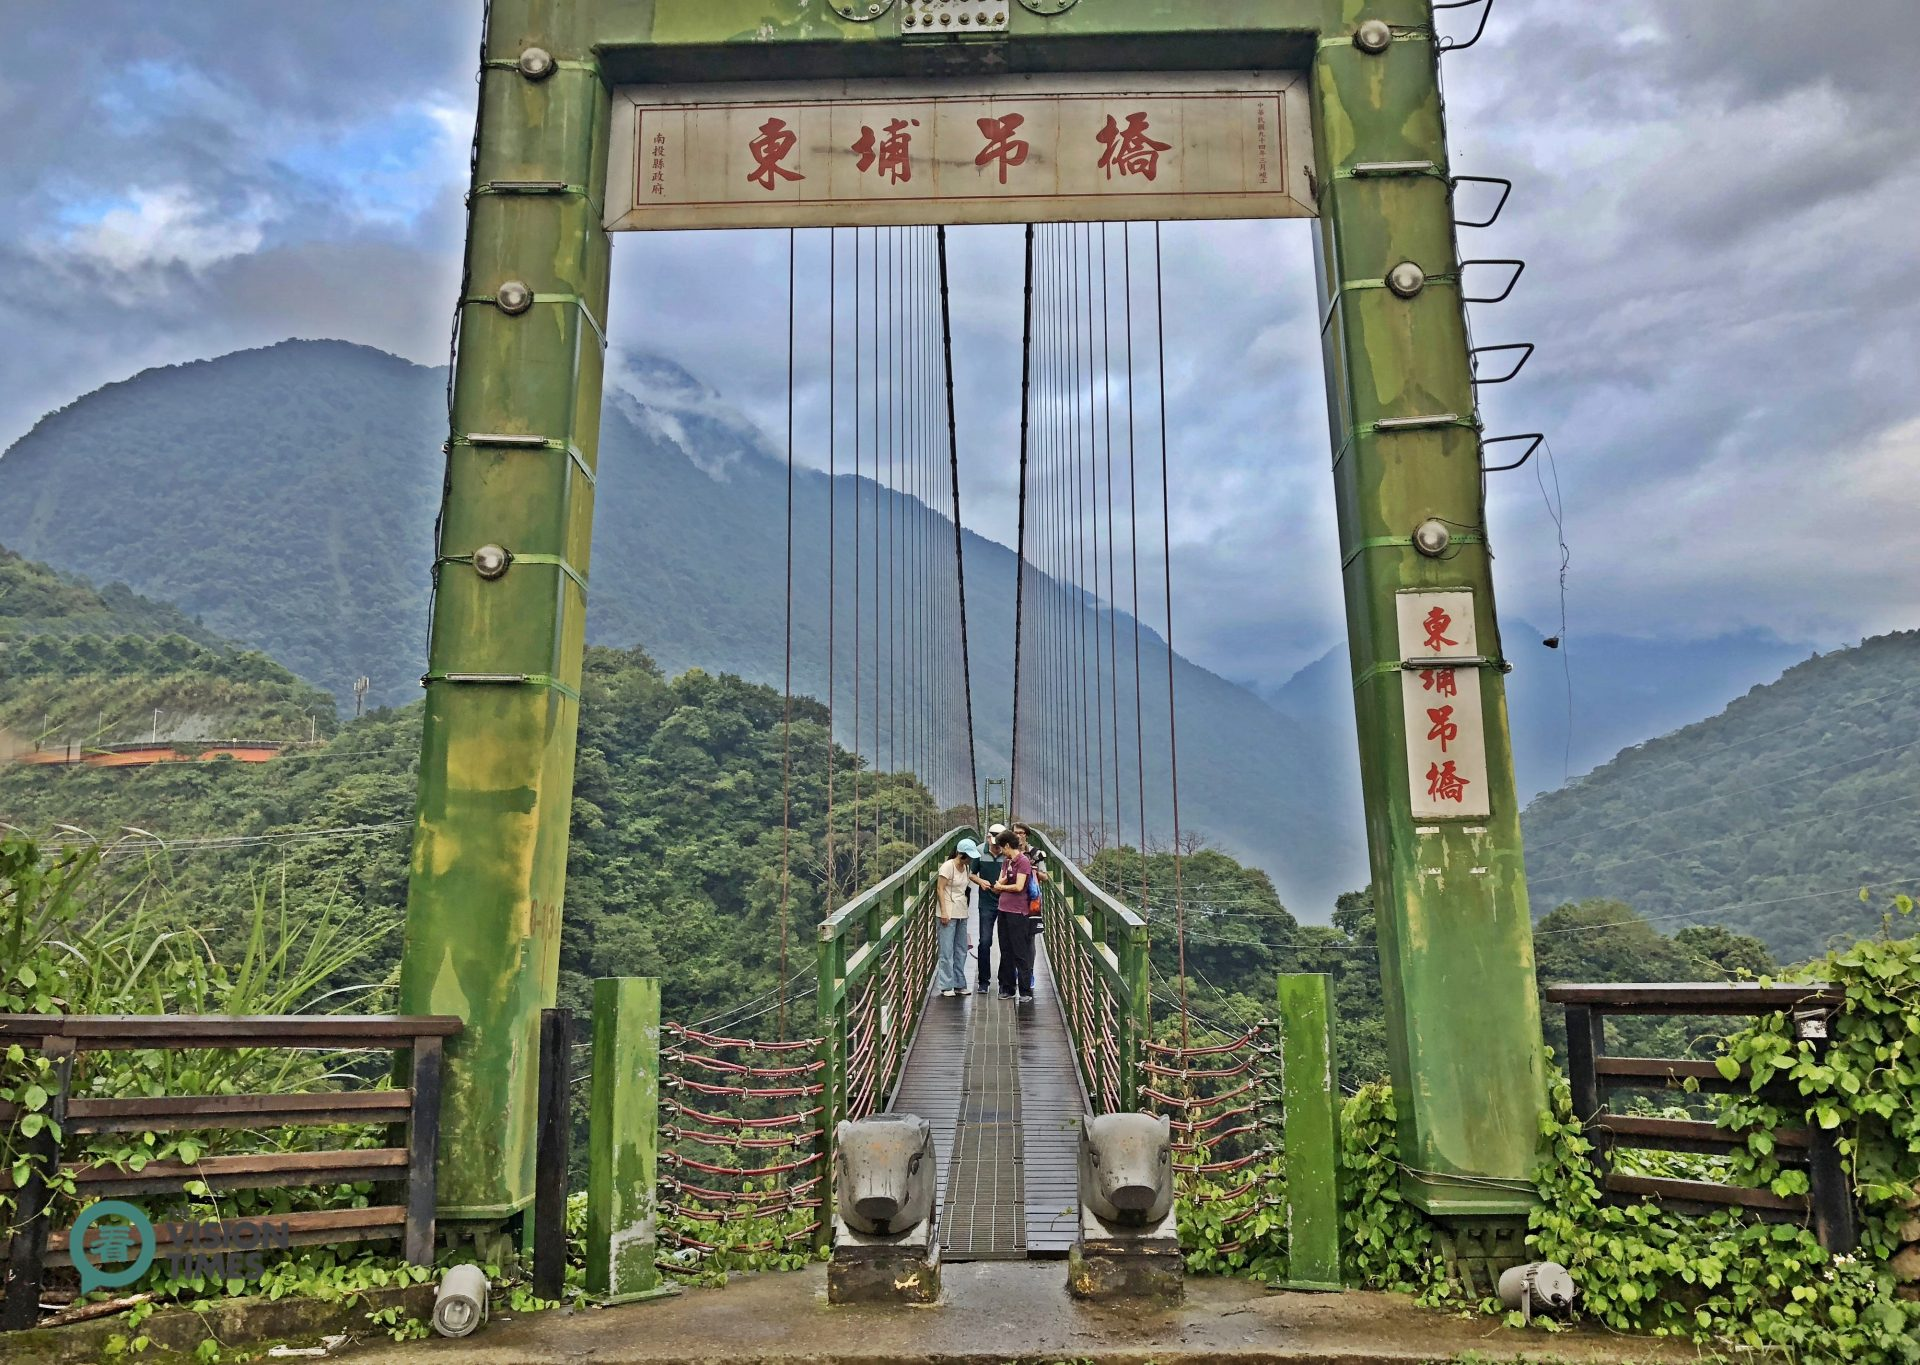 From the parking lot or windows of some hotel rooms, visitors can appreciate beautiful sceneries of the mountains and a suspension bridge in Dongpu. (Image: Billy Shyu / Vision Times)